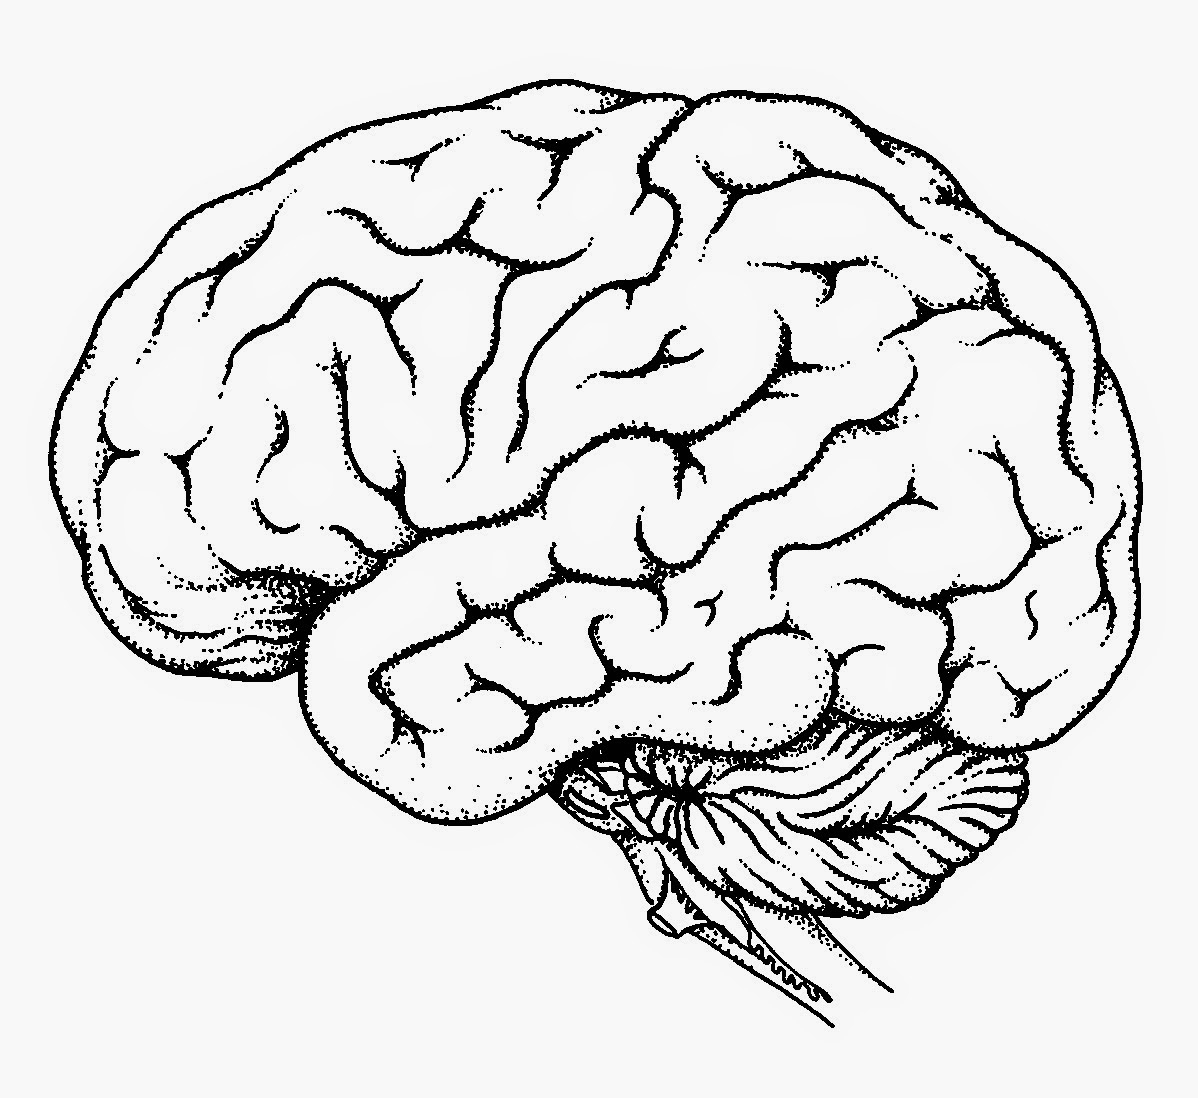 Brain Diagram Labeled Drawing Of The Brain With Labels At Getdrawings Free For